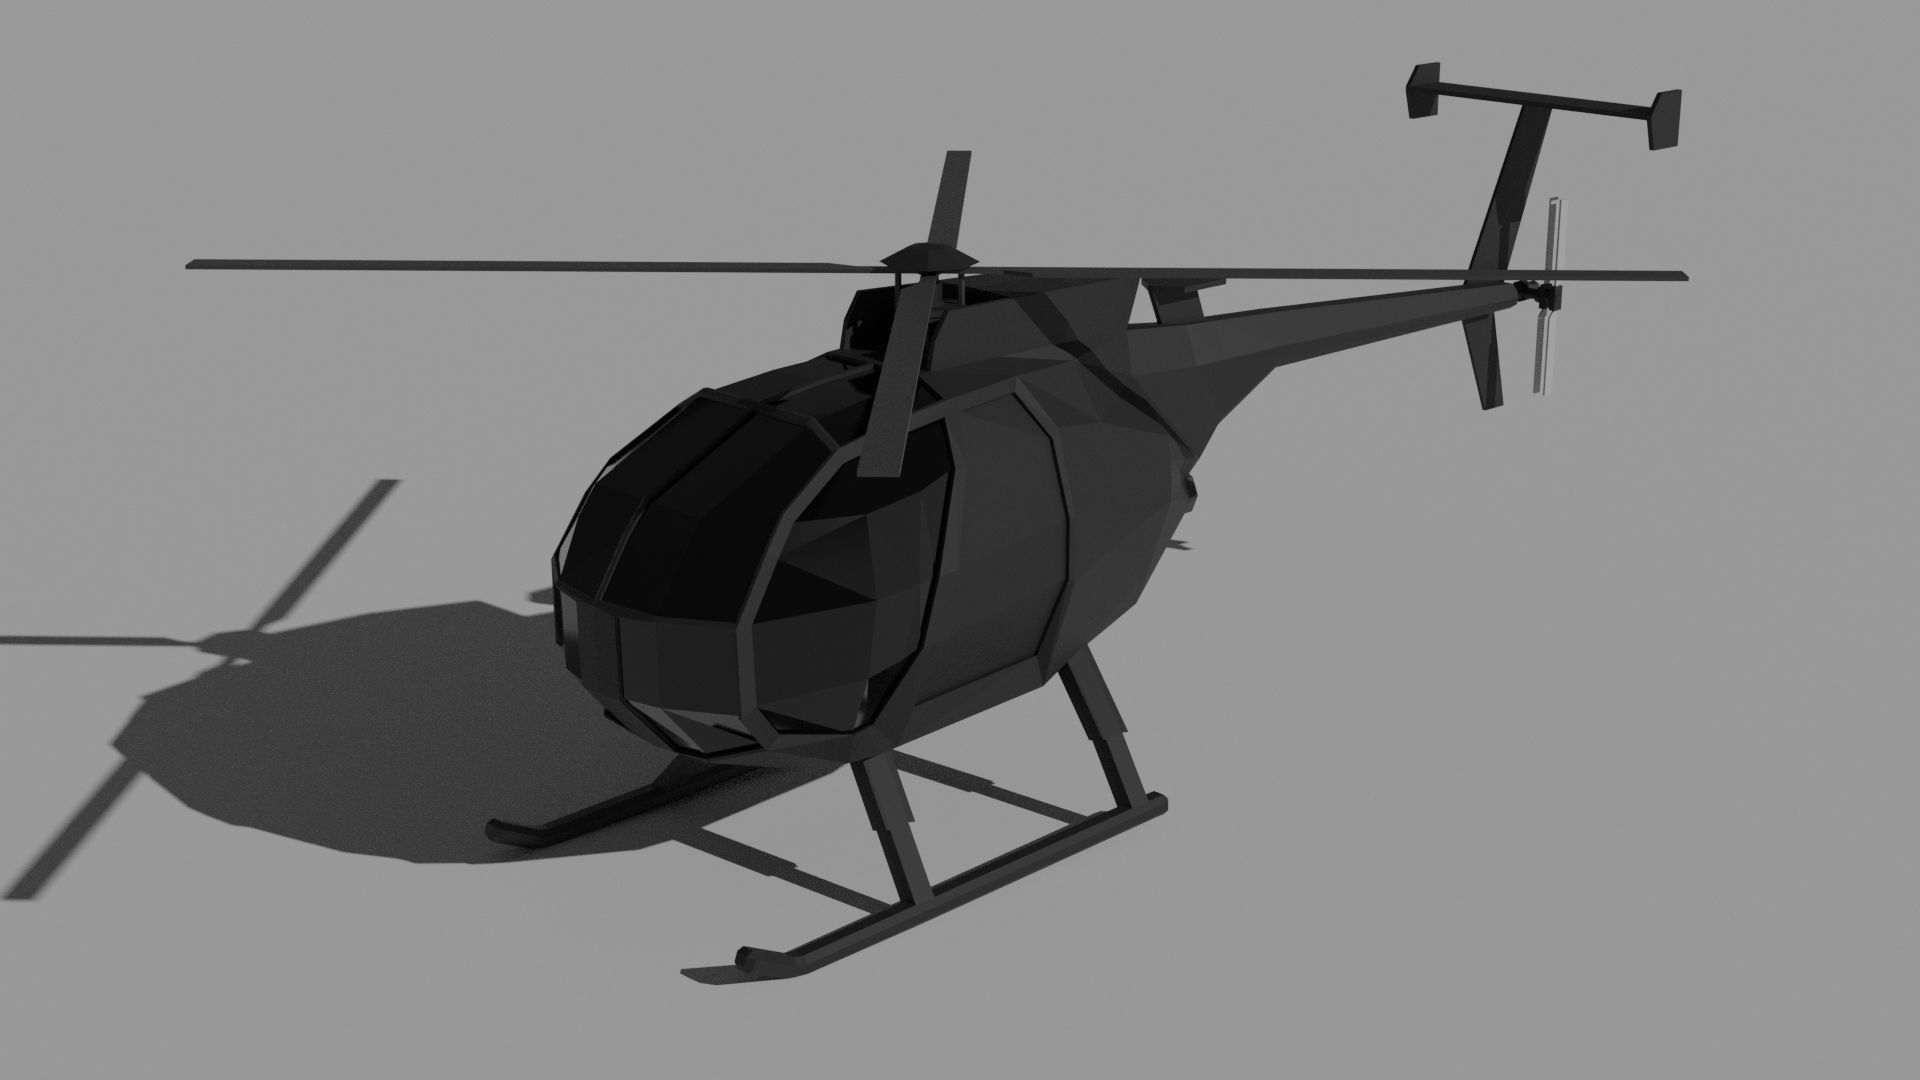 AH-6 Little Egg